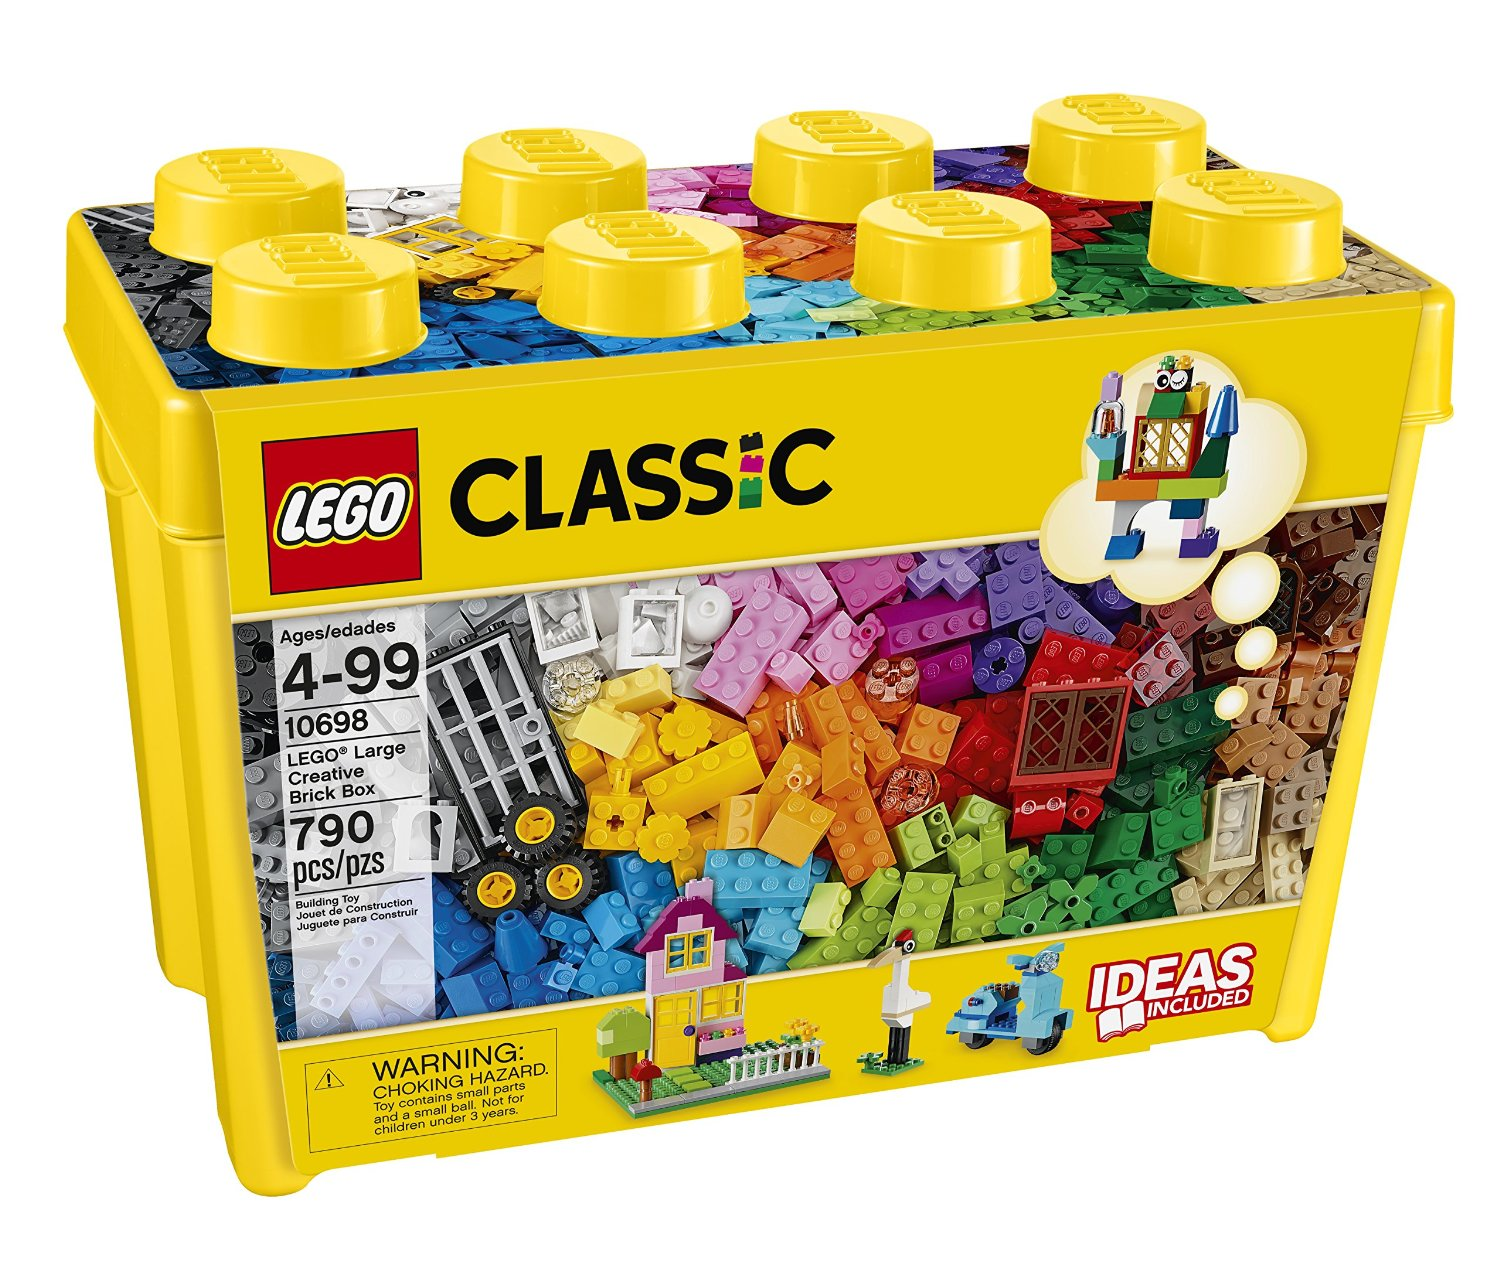 LEGO Hacks for Building a Collection and Encouraging Creative Building